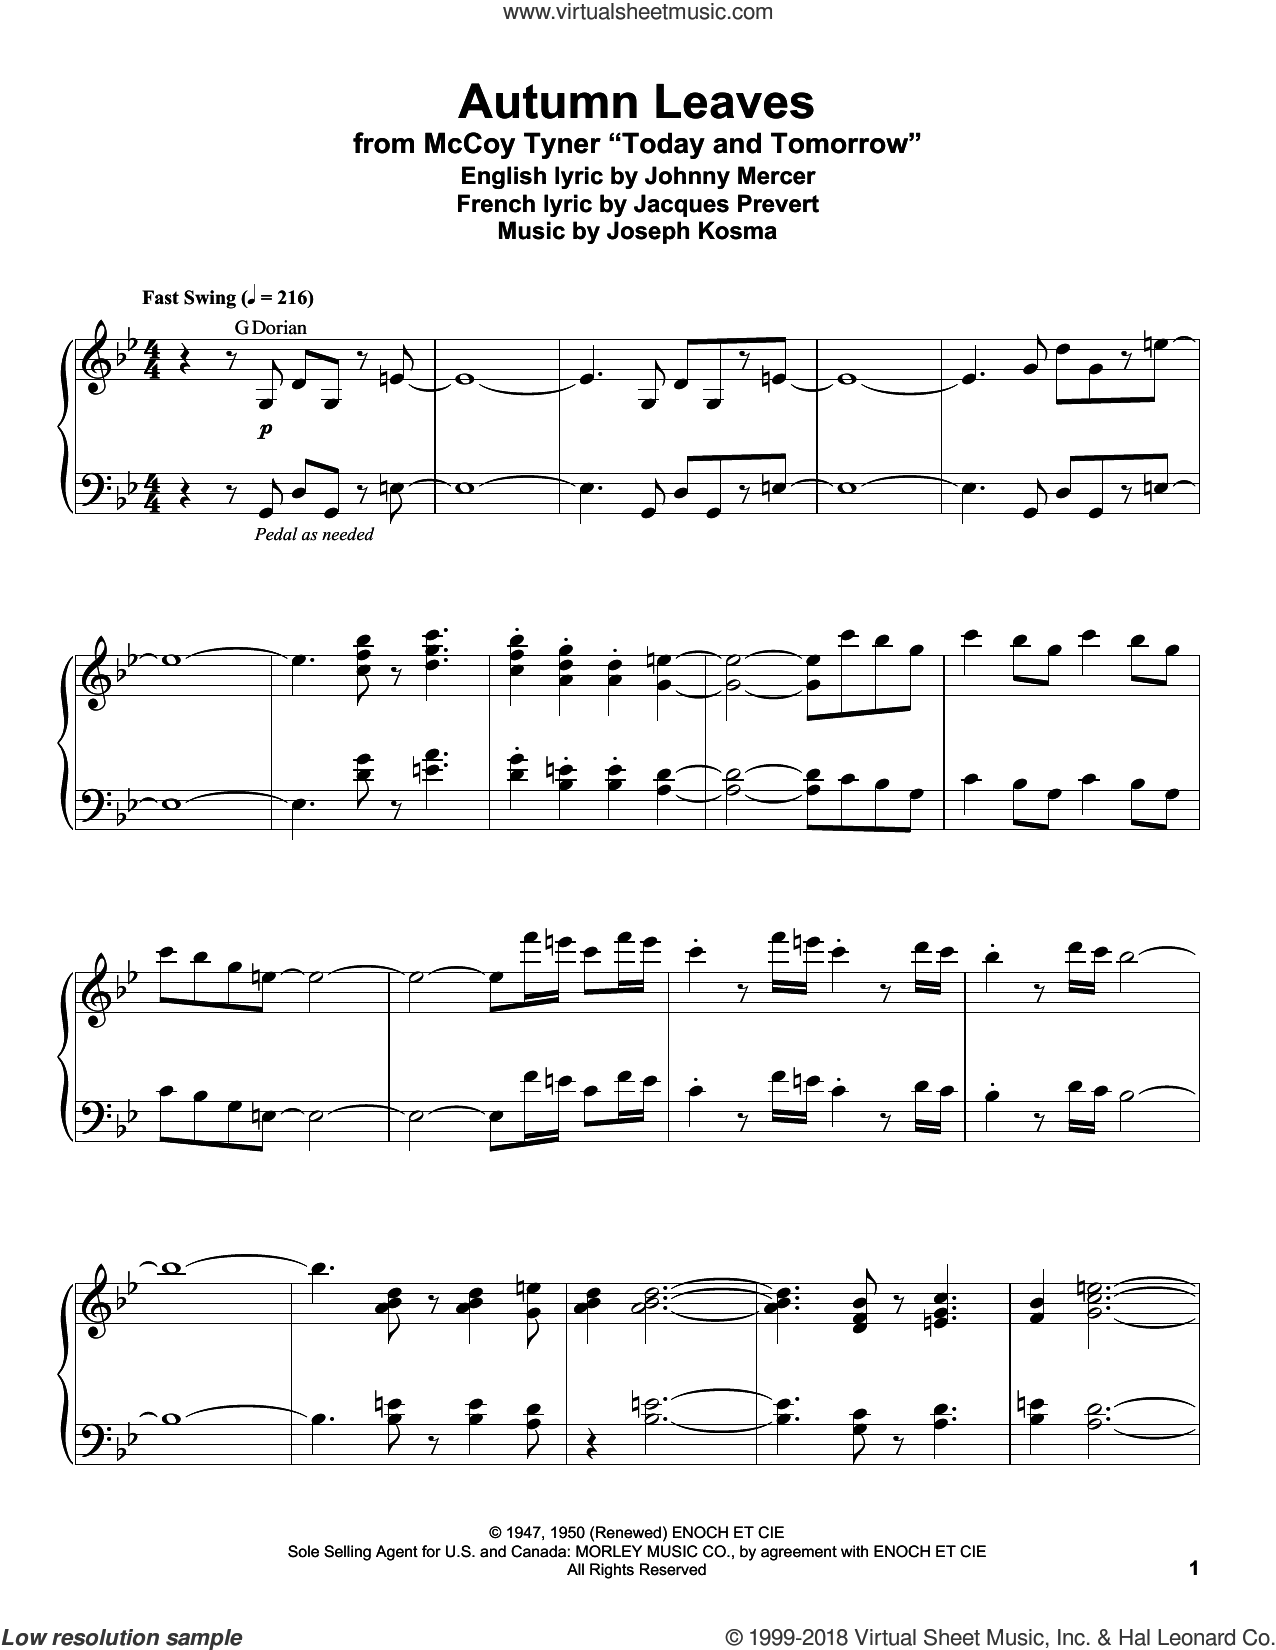 Autumn Leaves sheet music for piano solo (transcription) by Johnny Mercer, Mitch Miller, Roger Williams, Steve Allen & George Cates, Jacques Prevert and Joseph Kosma, intermediate piano (transcription)